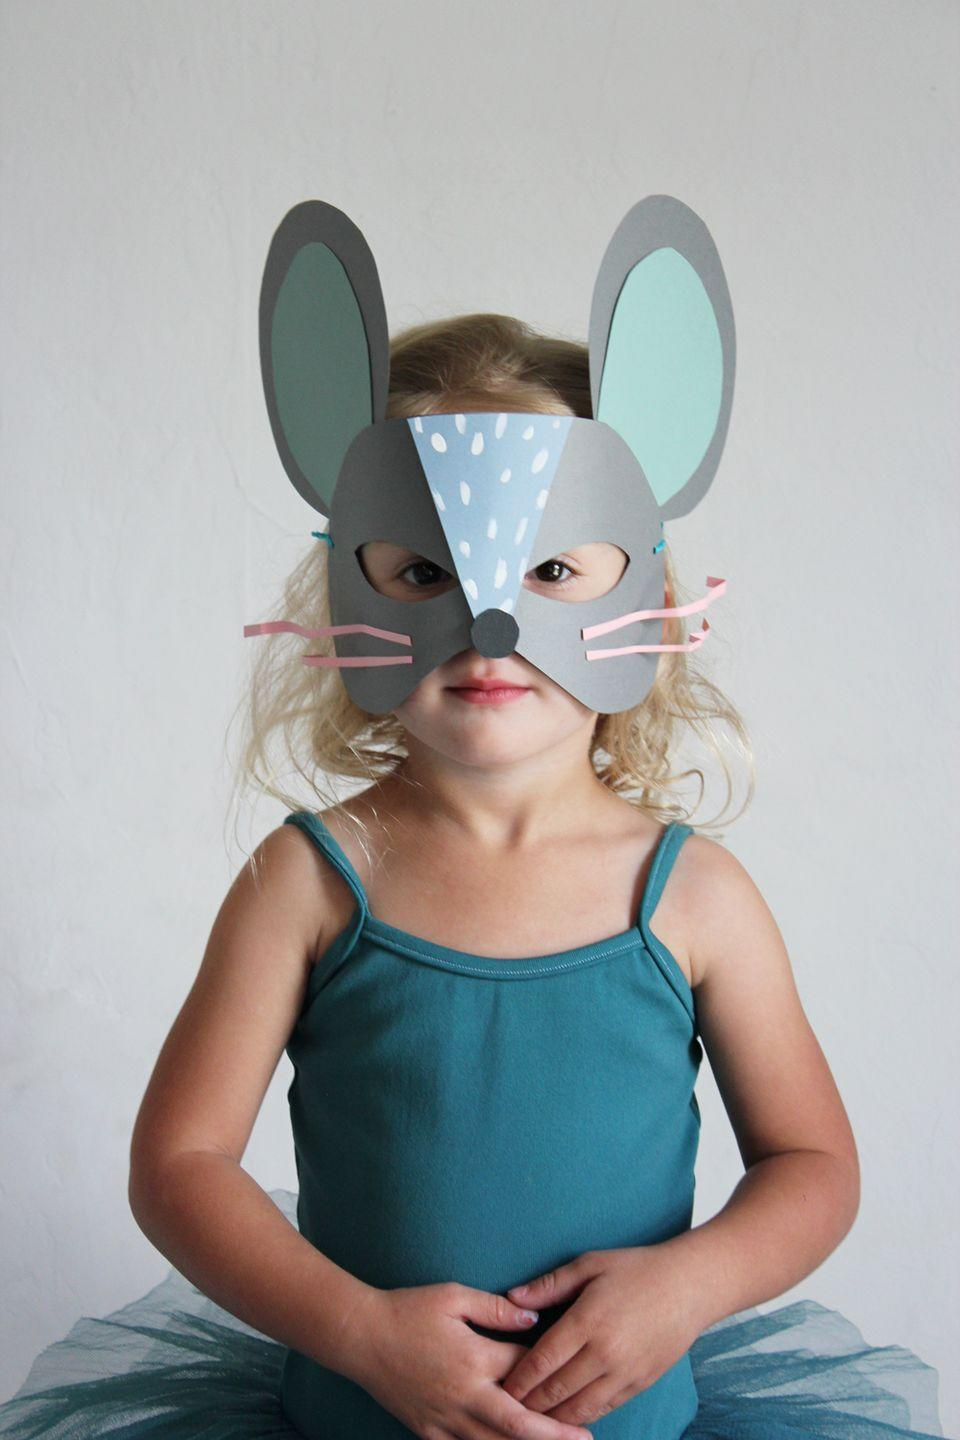 """<p>Transform your toddler into a scurrying cutie with this printable template-turned mask. </p><p><strong>Get the tutorial at <a href=""""http://mermagblog.com/paper-cat-and-mouse-mask-diys/"""" rel=""""nofollow noopener"""" target=""""_blank"""" data-ylk=""""slk:Mer Mag"""" class=""""link rapid-noclick-resp"""">Mer Mag</a>.</strong></p>"""